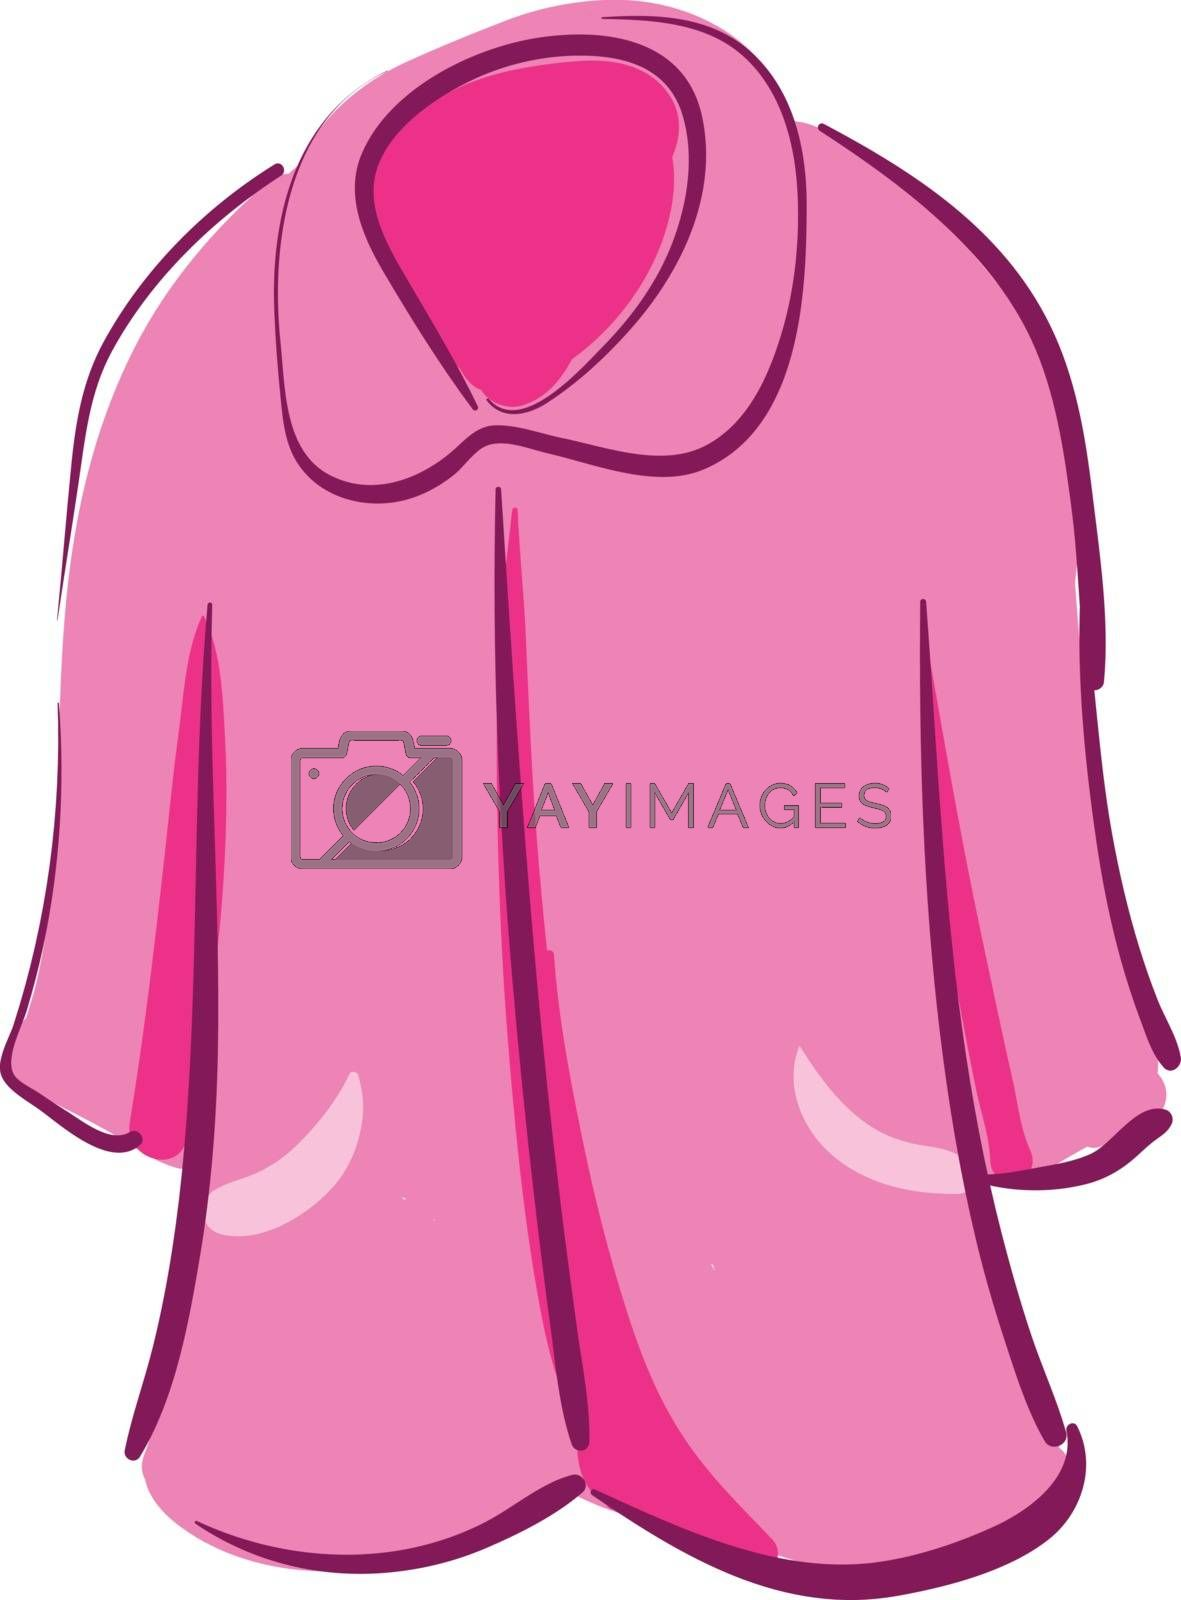 Royalty free image of Clipart of a showcase pink-colored nightie vector or color illus by Morphart